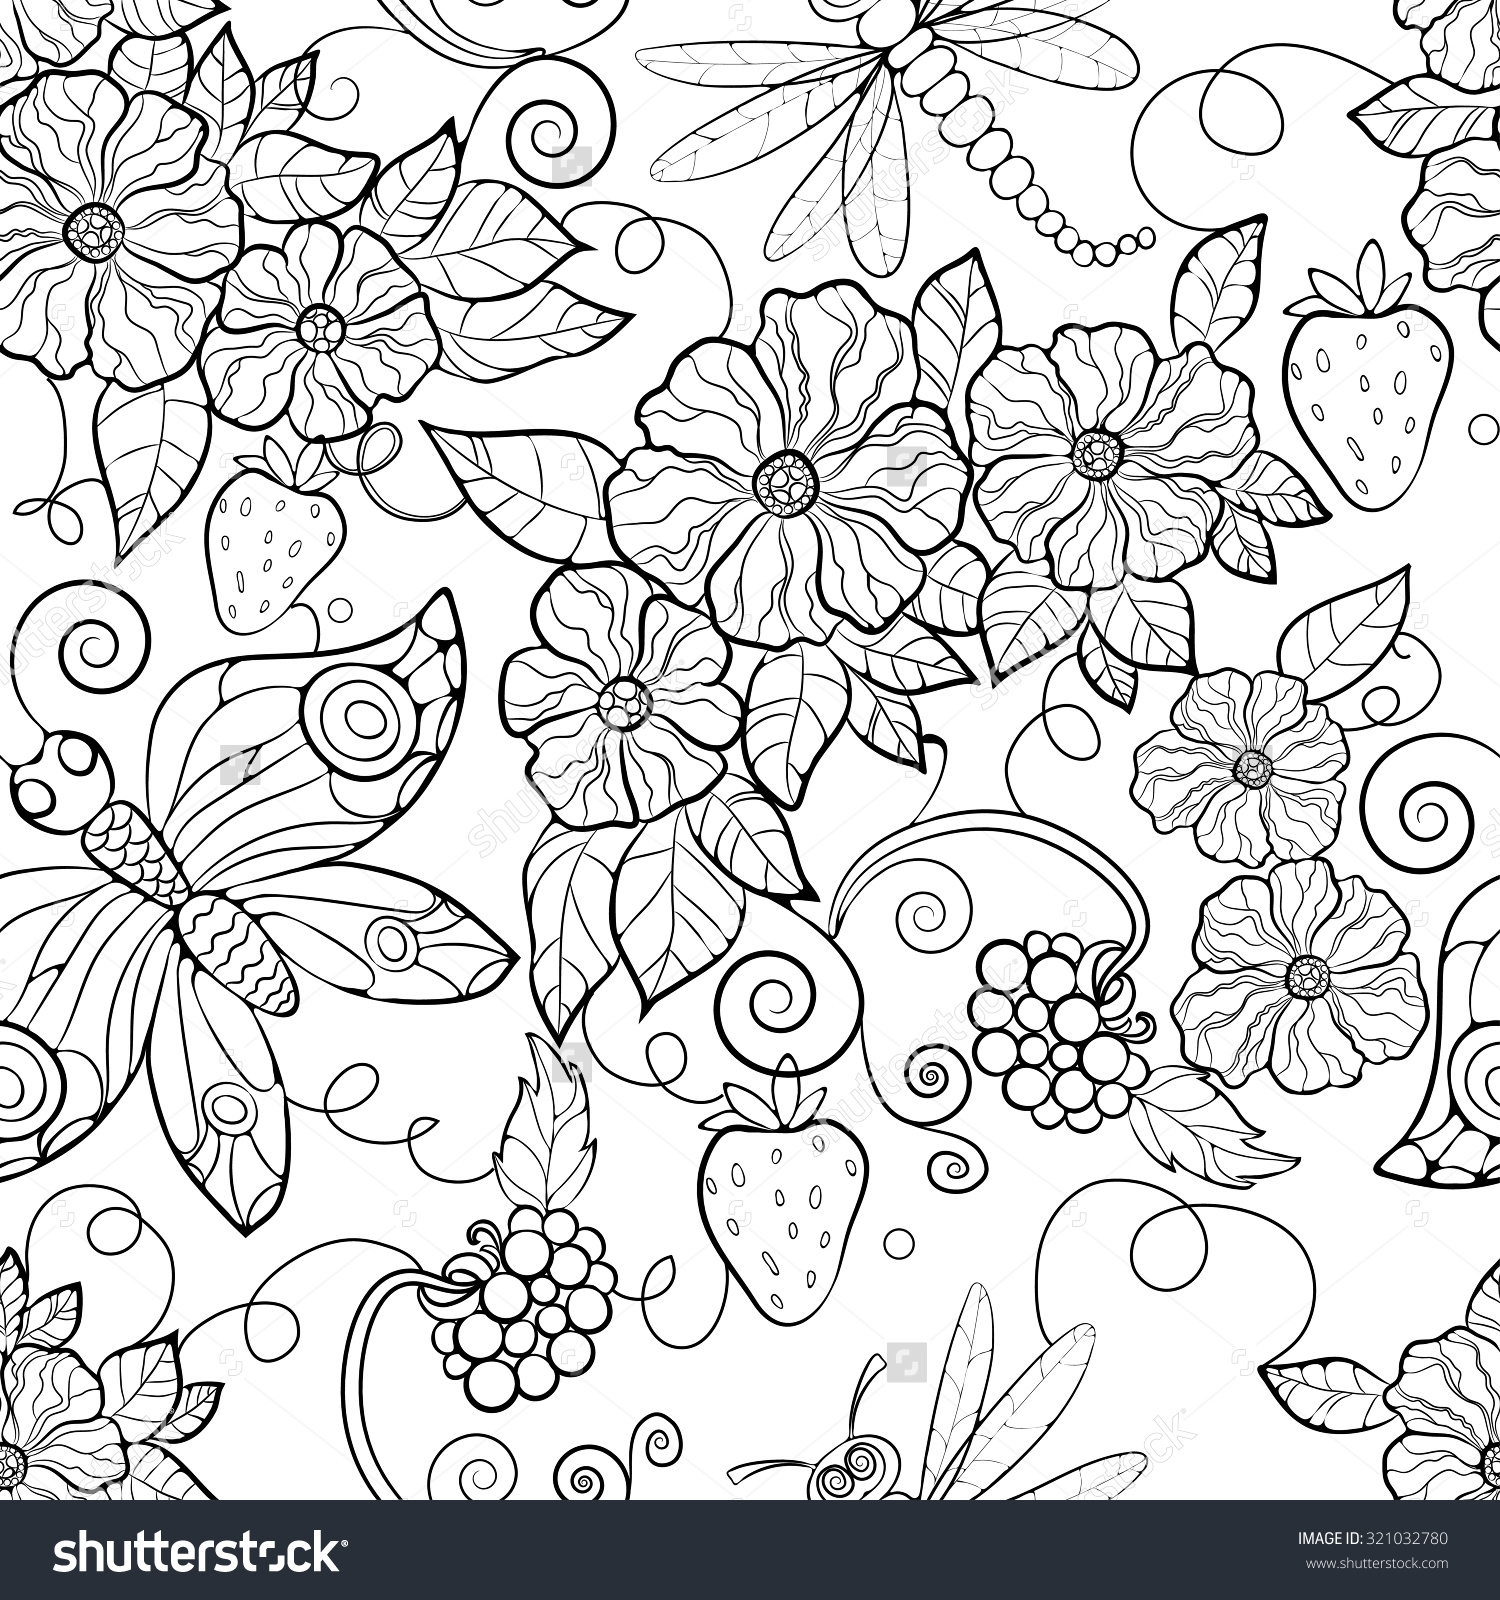 1500x1600 Flower Pattern Coloring Pages To Print Of Printable Adult Flowers